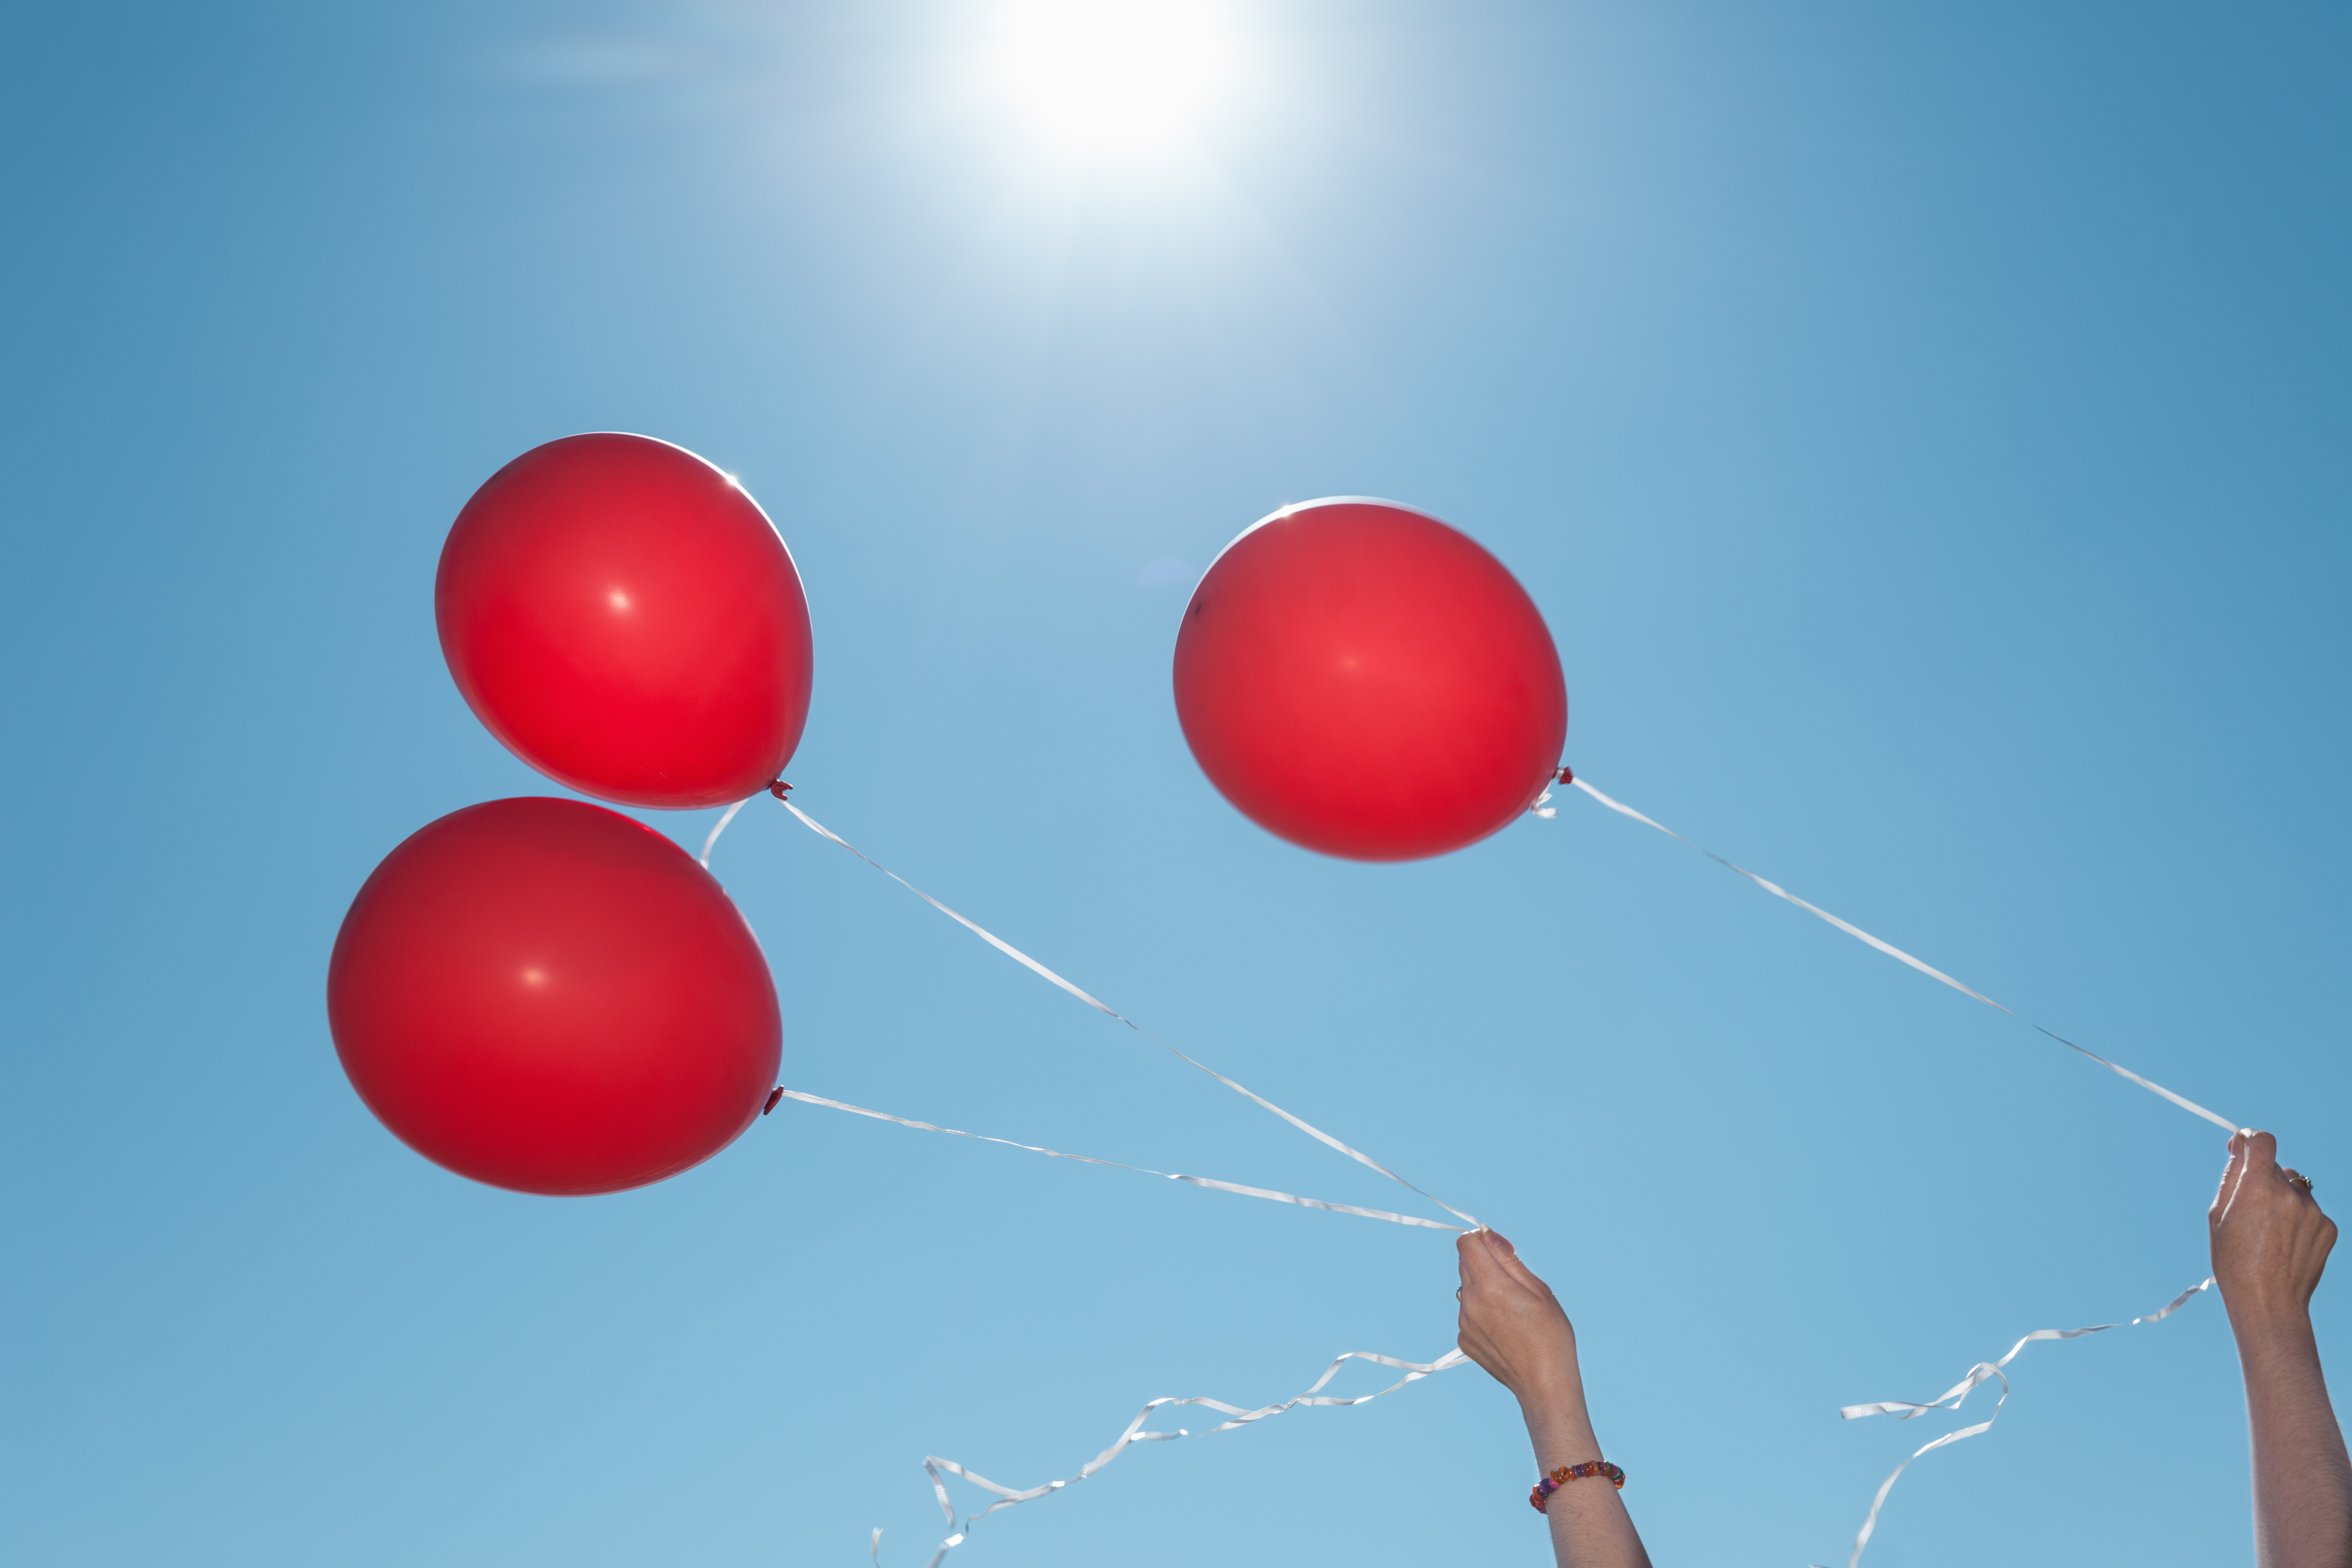 Hands holding three red balloons against blue sky